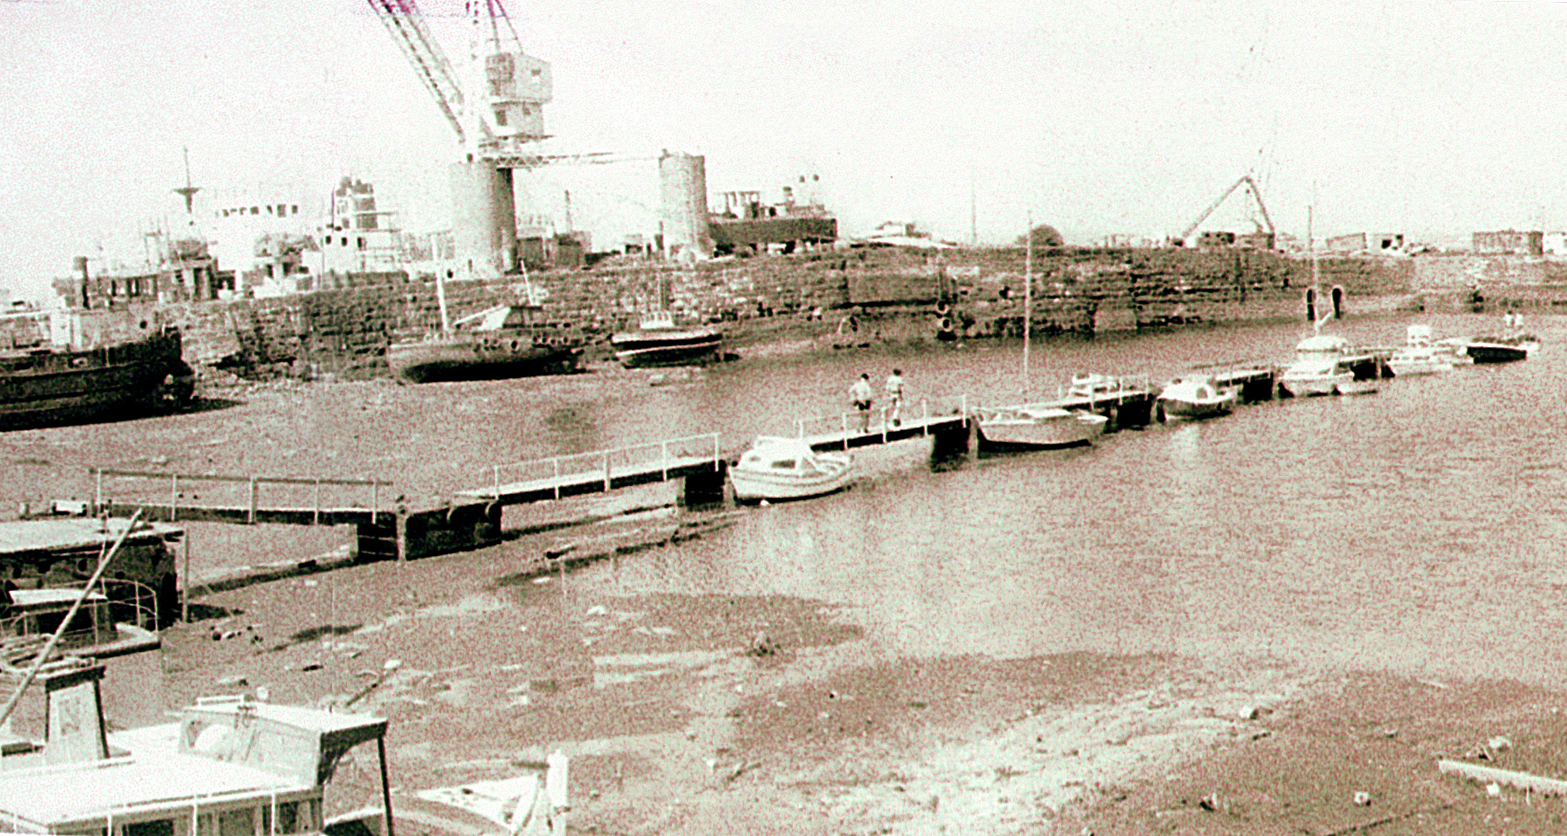 Built by TCC in 1976 the first pontoon in the inner harbour accessed 'The Hole'